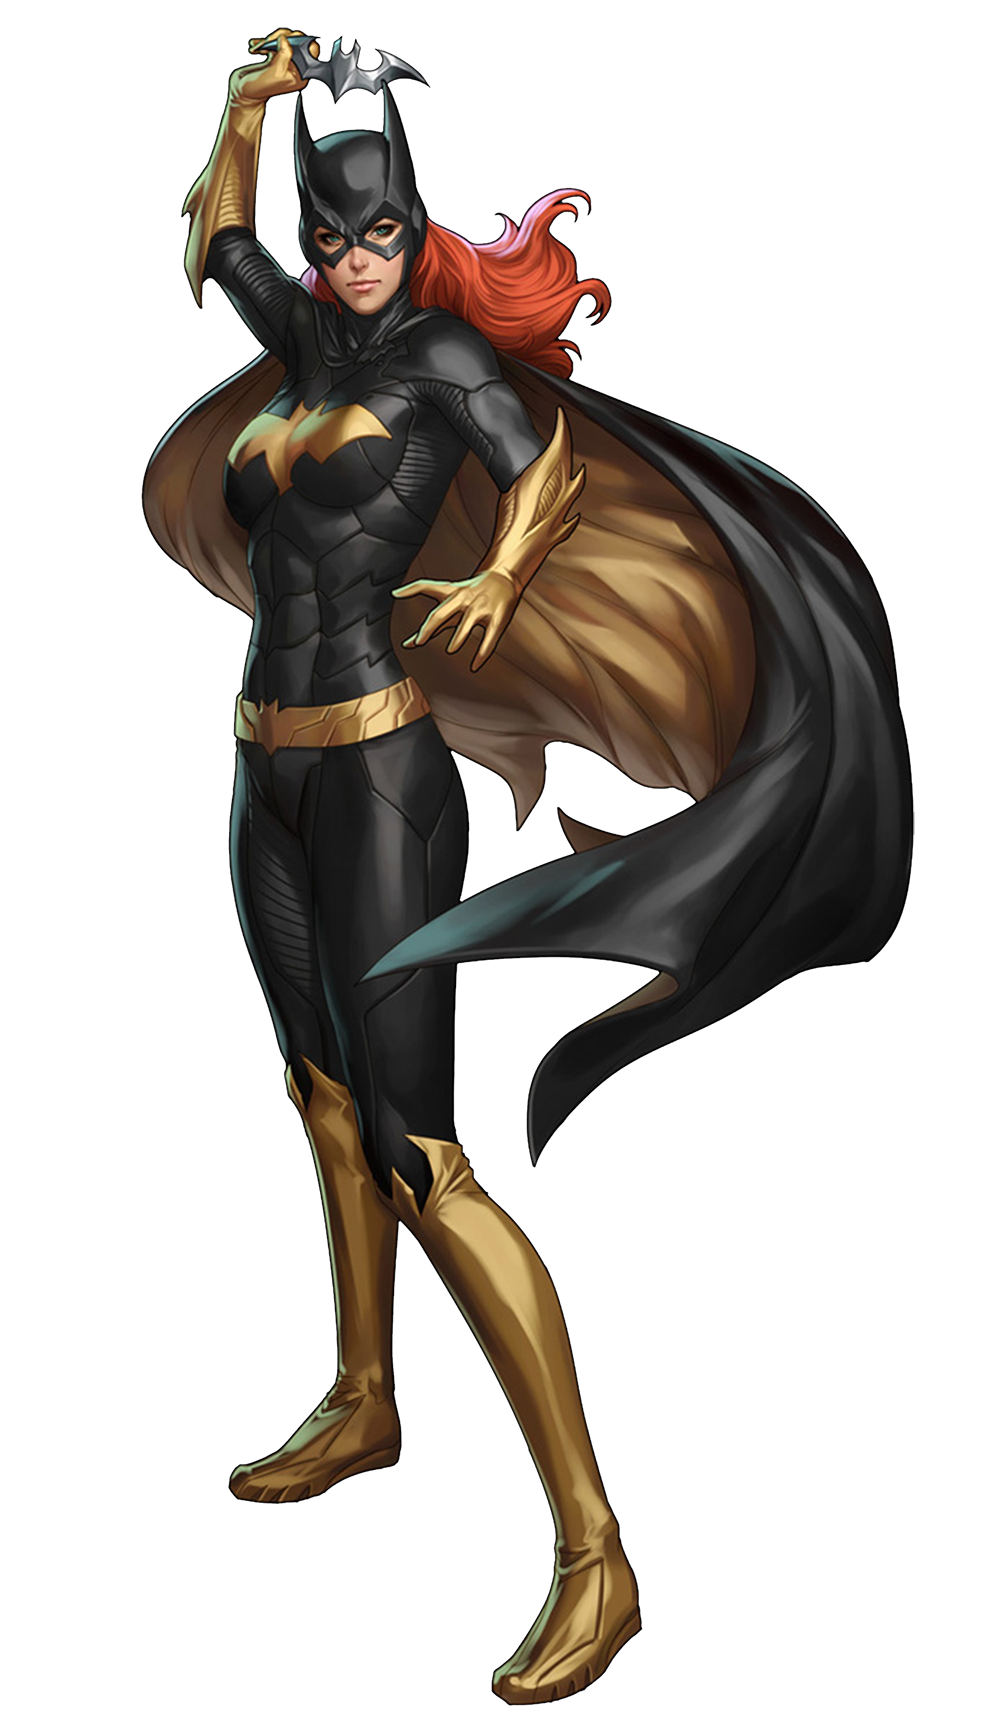 Batgirl By Bobhertley On DeviantArt